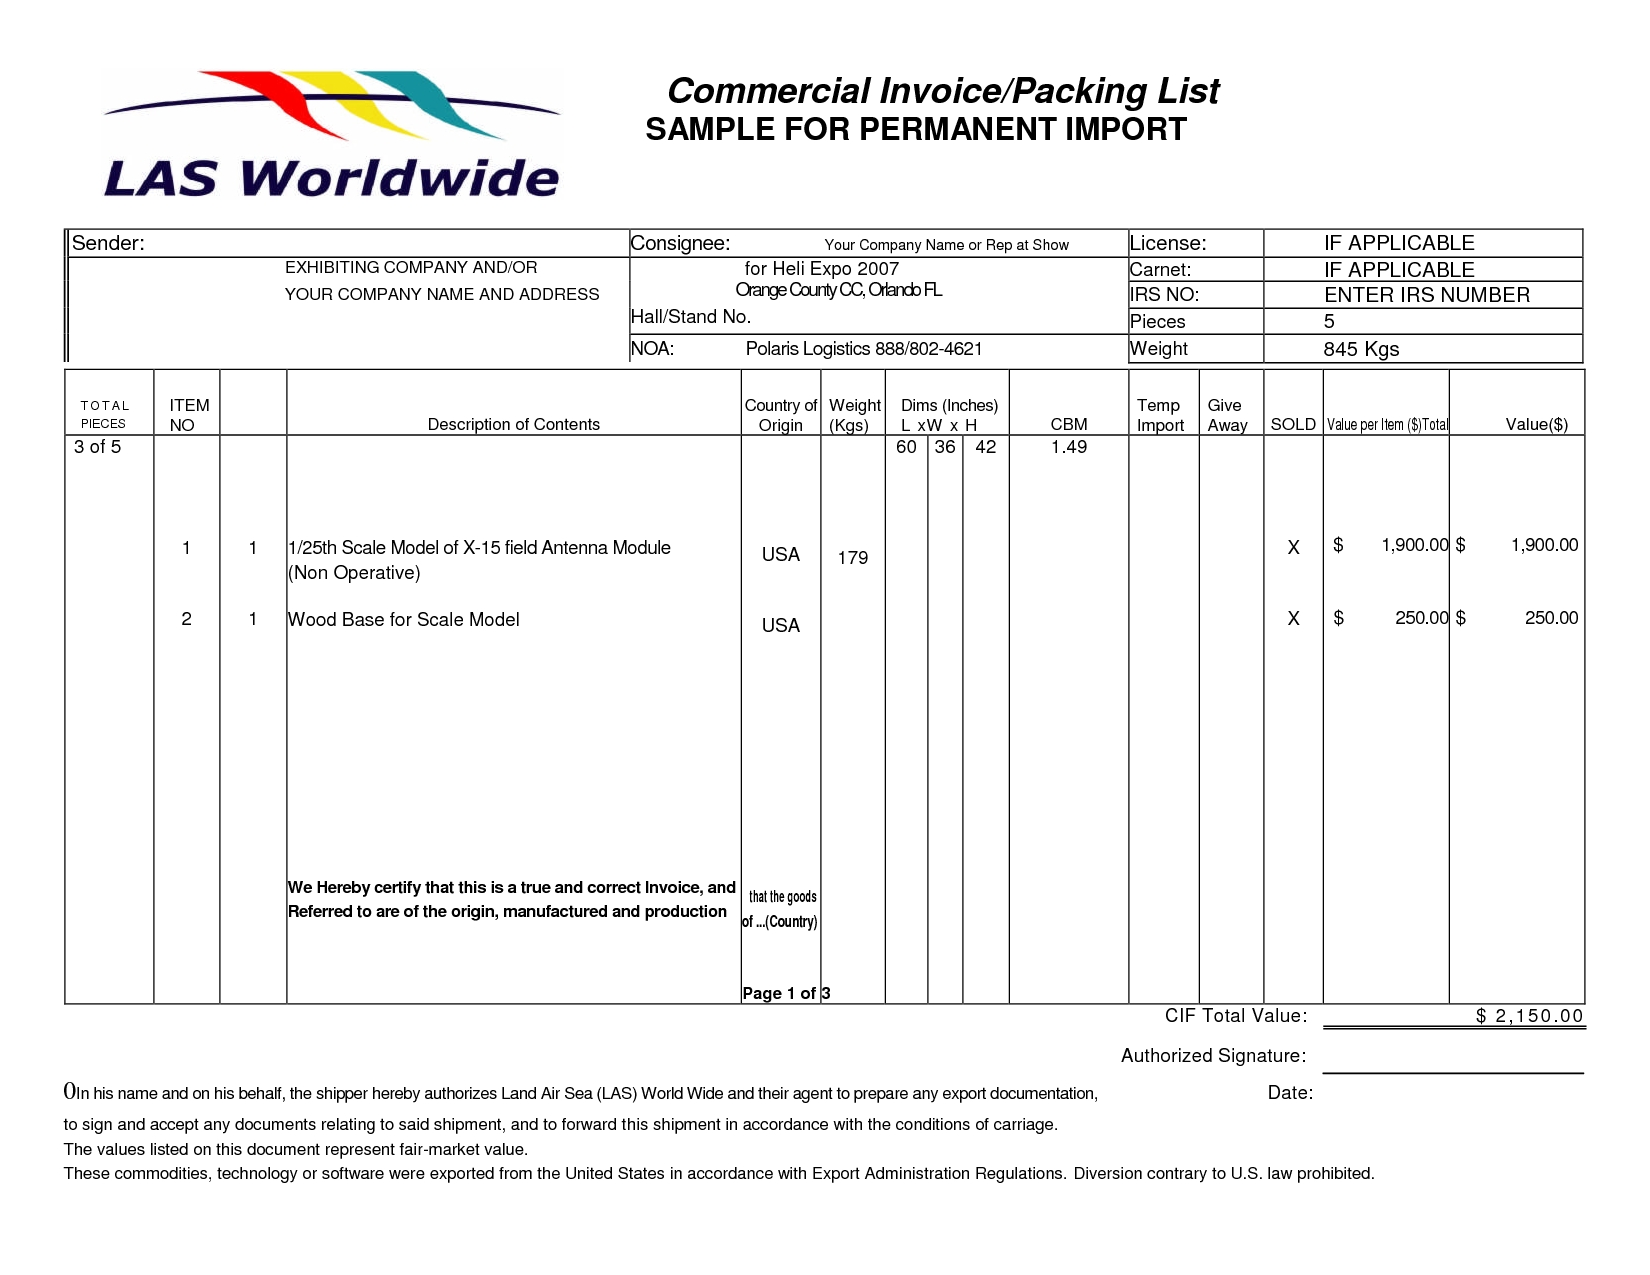 Shipments Modules Invoice Packing List Sample Packing List Template  Cobainagc Invoice Packing List ...  Packing List Sample